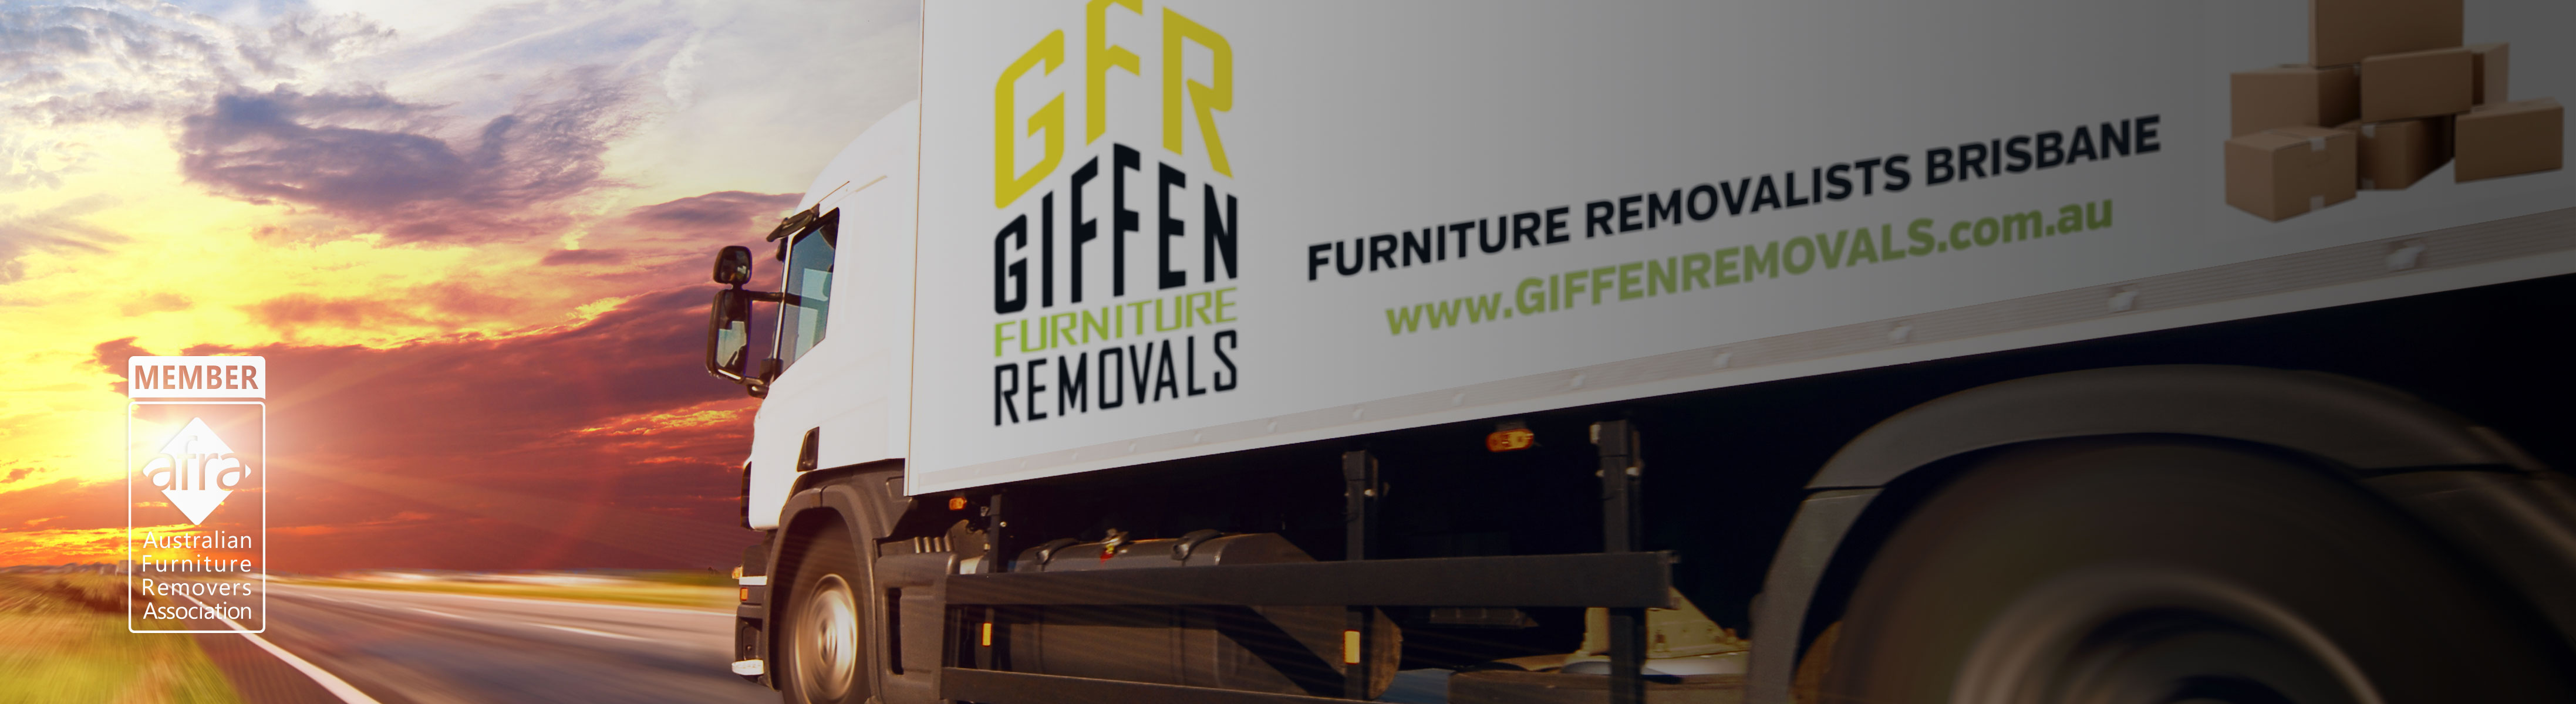 Griffen Furniture Removal Furniture Removalists Brisbane